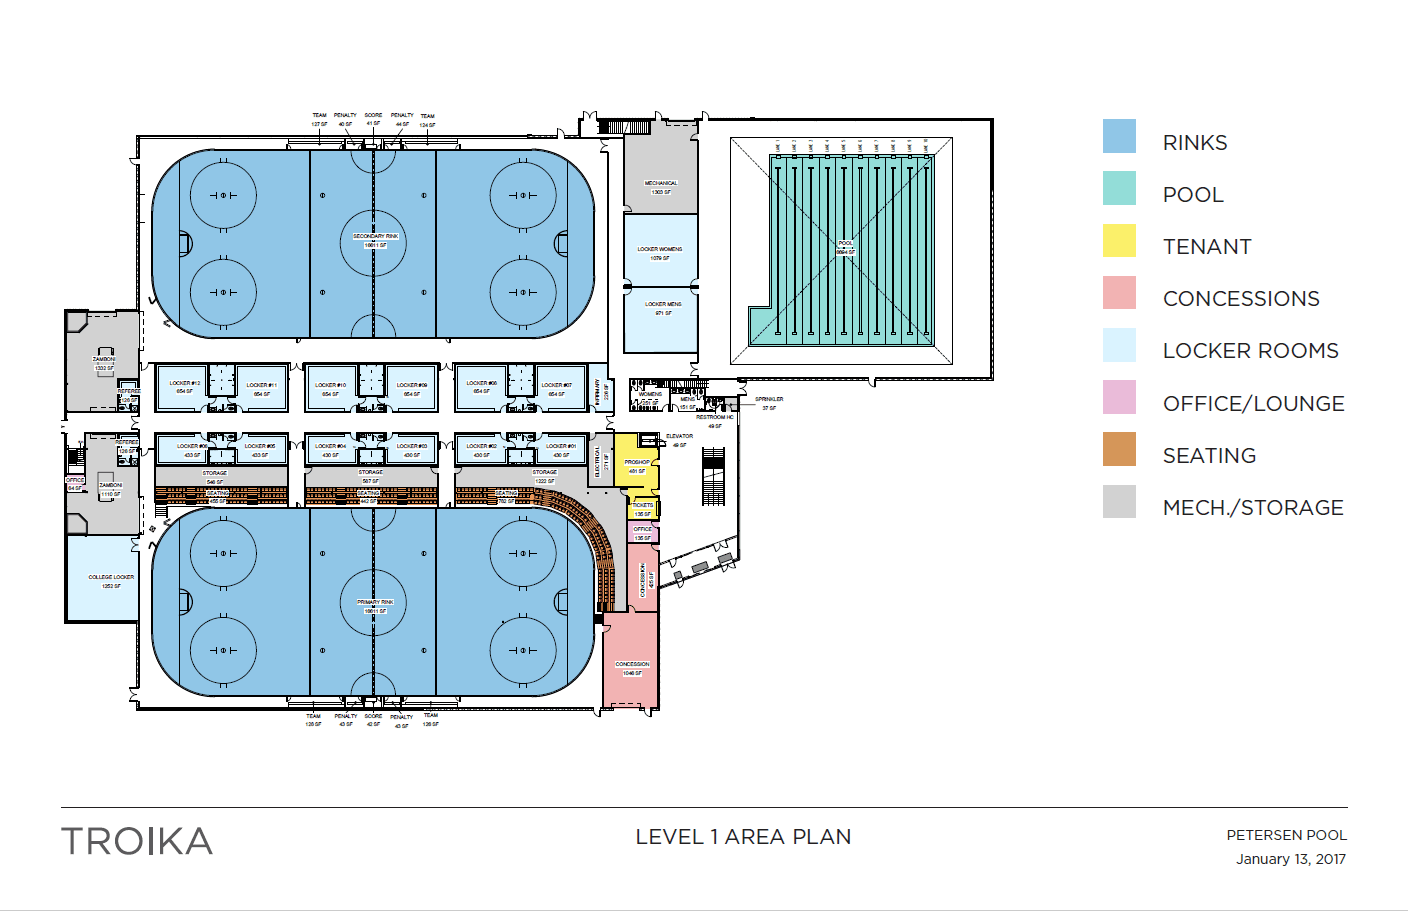 First floor area plans for the Petersen Pool facility